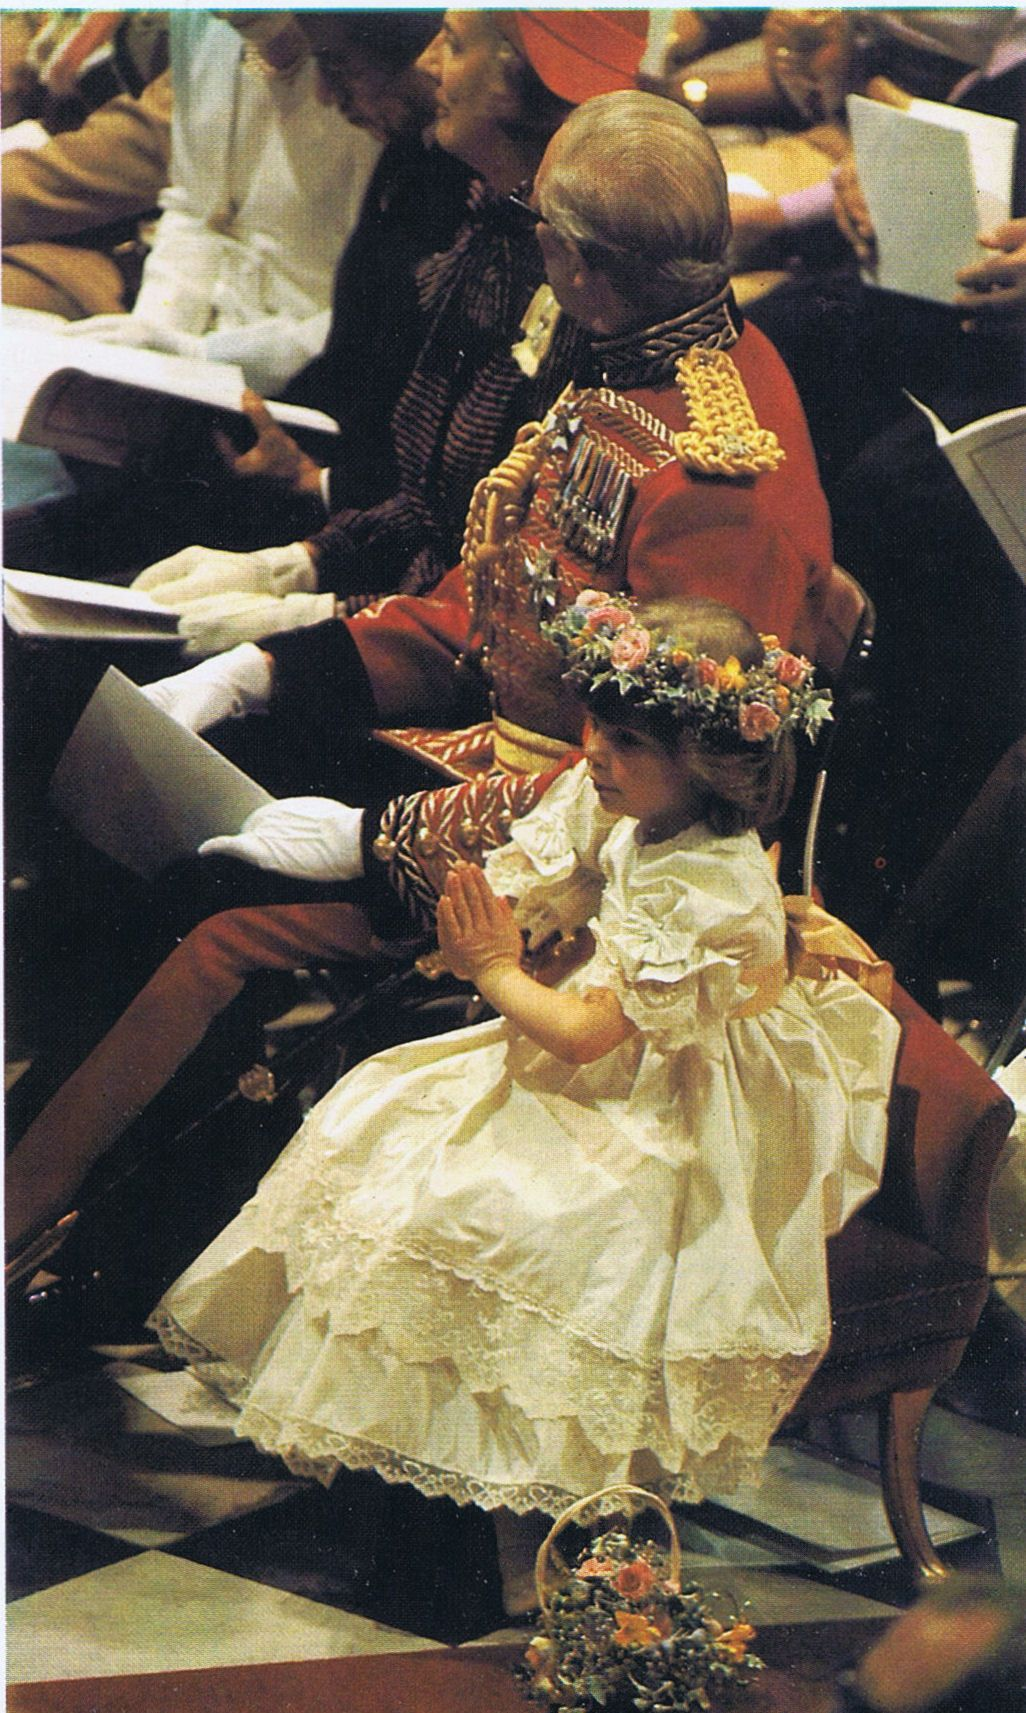 Diana's flower girl at Royal Wedding July 29, 1981